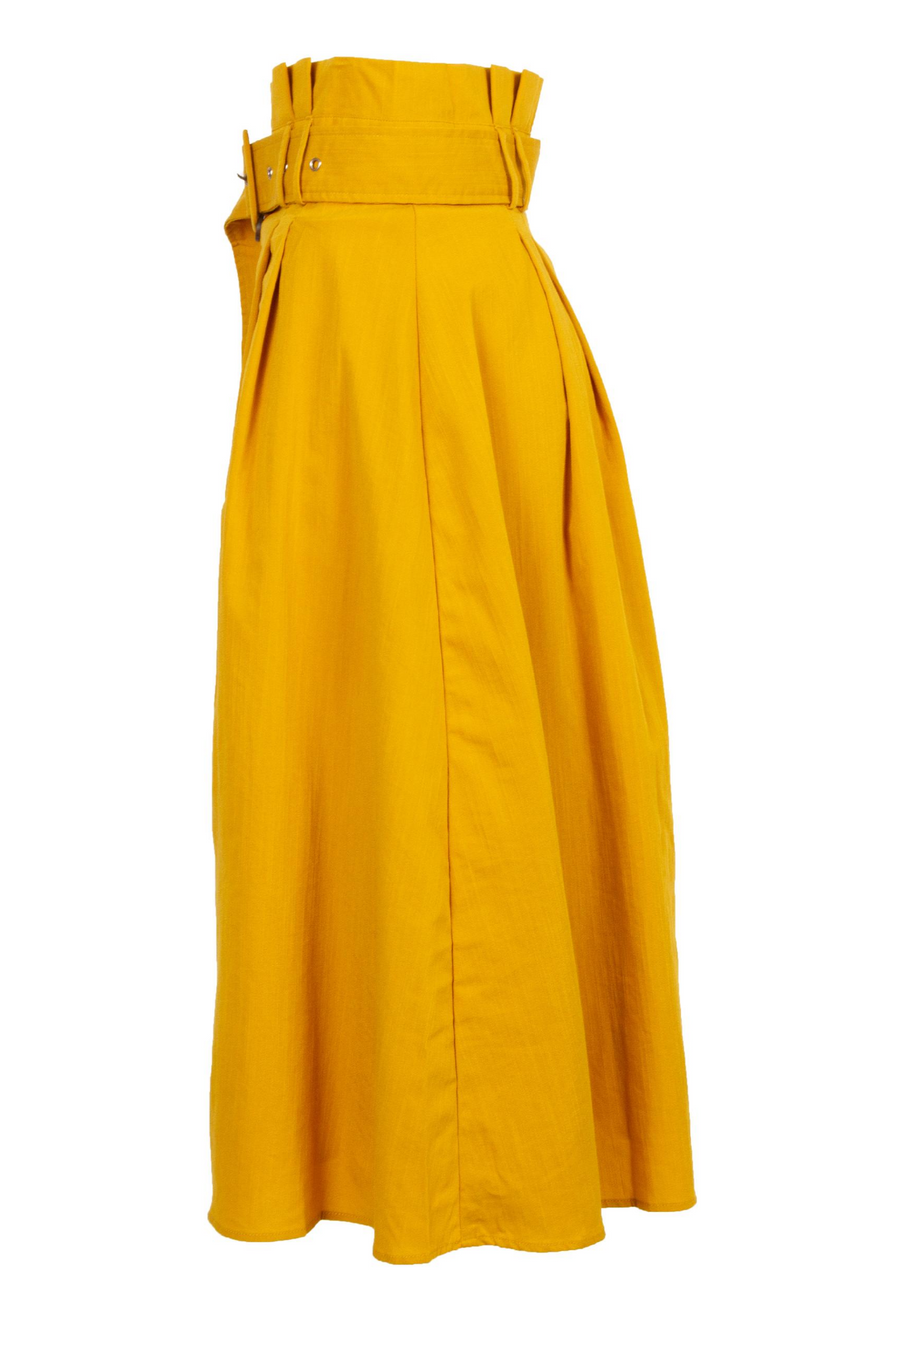 AOTC Bida Skirt Yellow